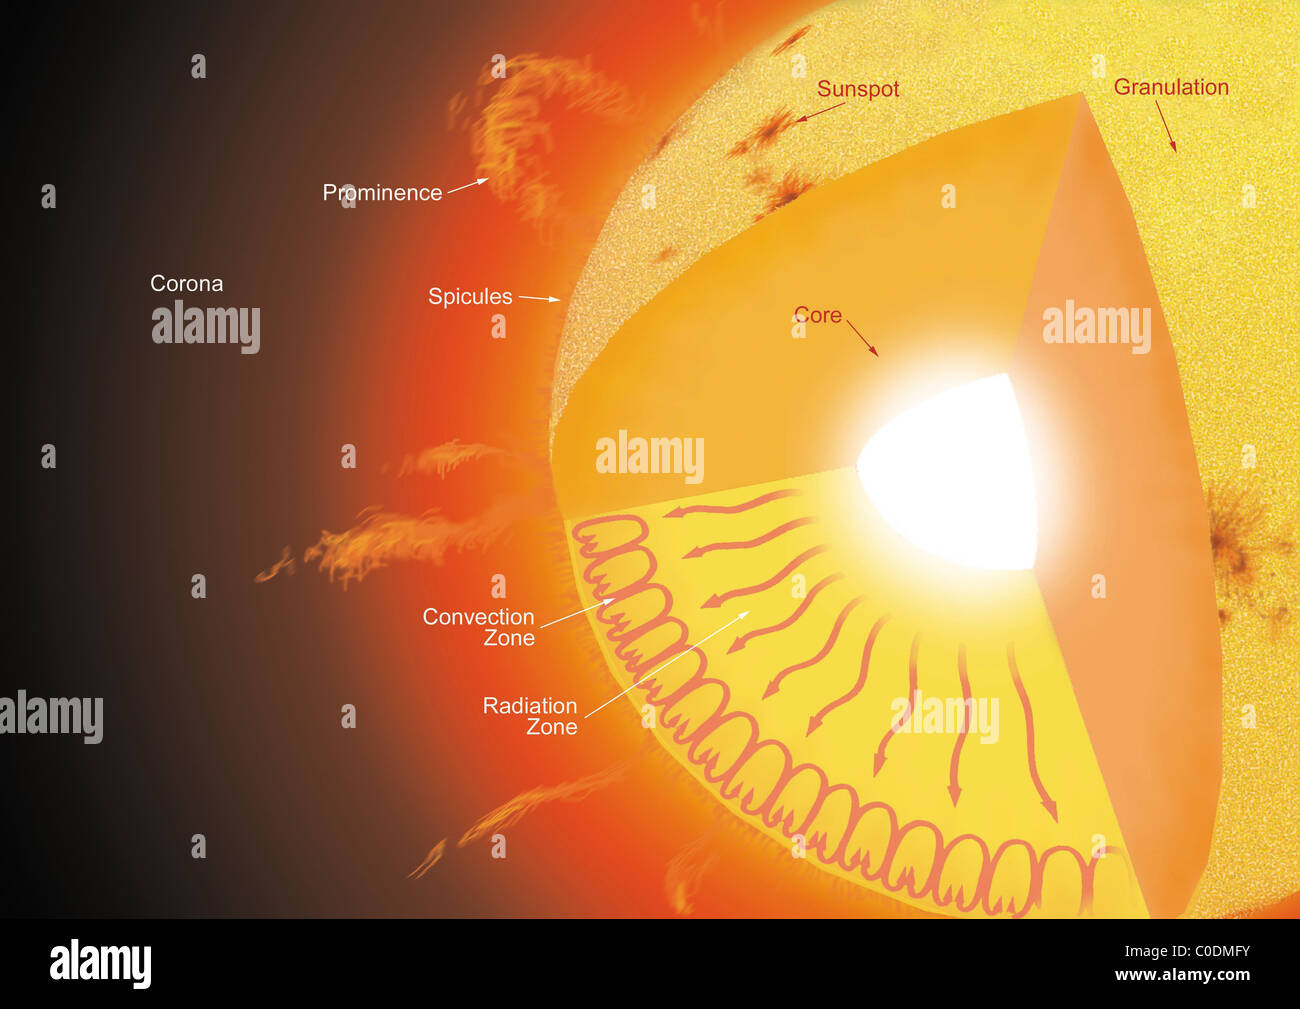 layers of the sun diagram u haul 4 way flat wiring atmosphere stock photos and